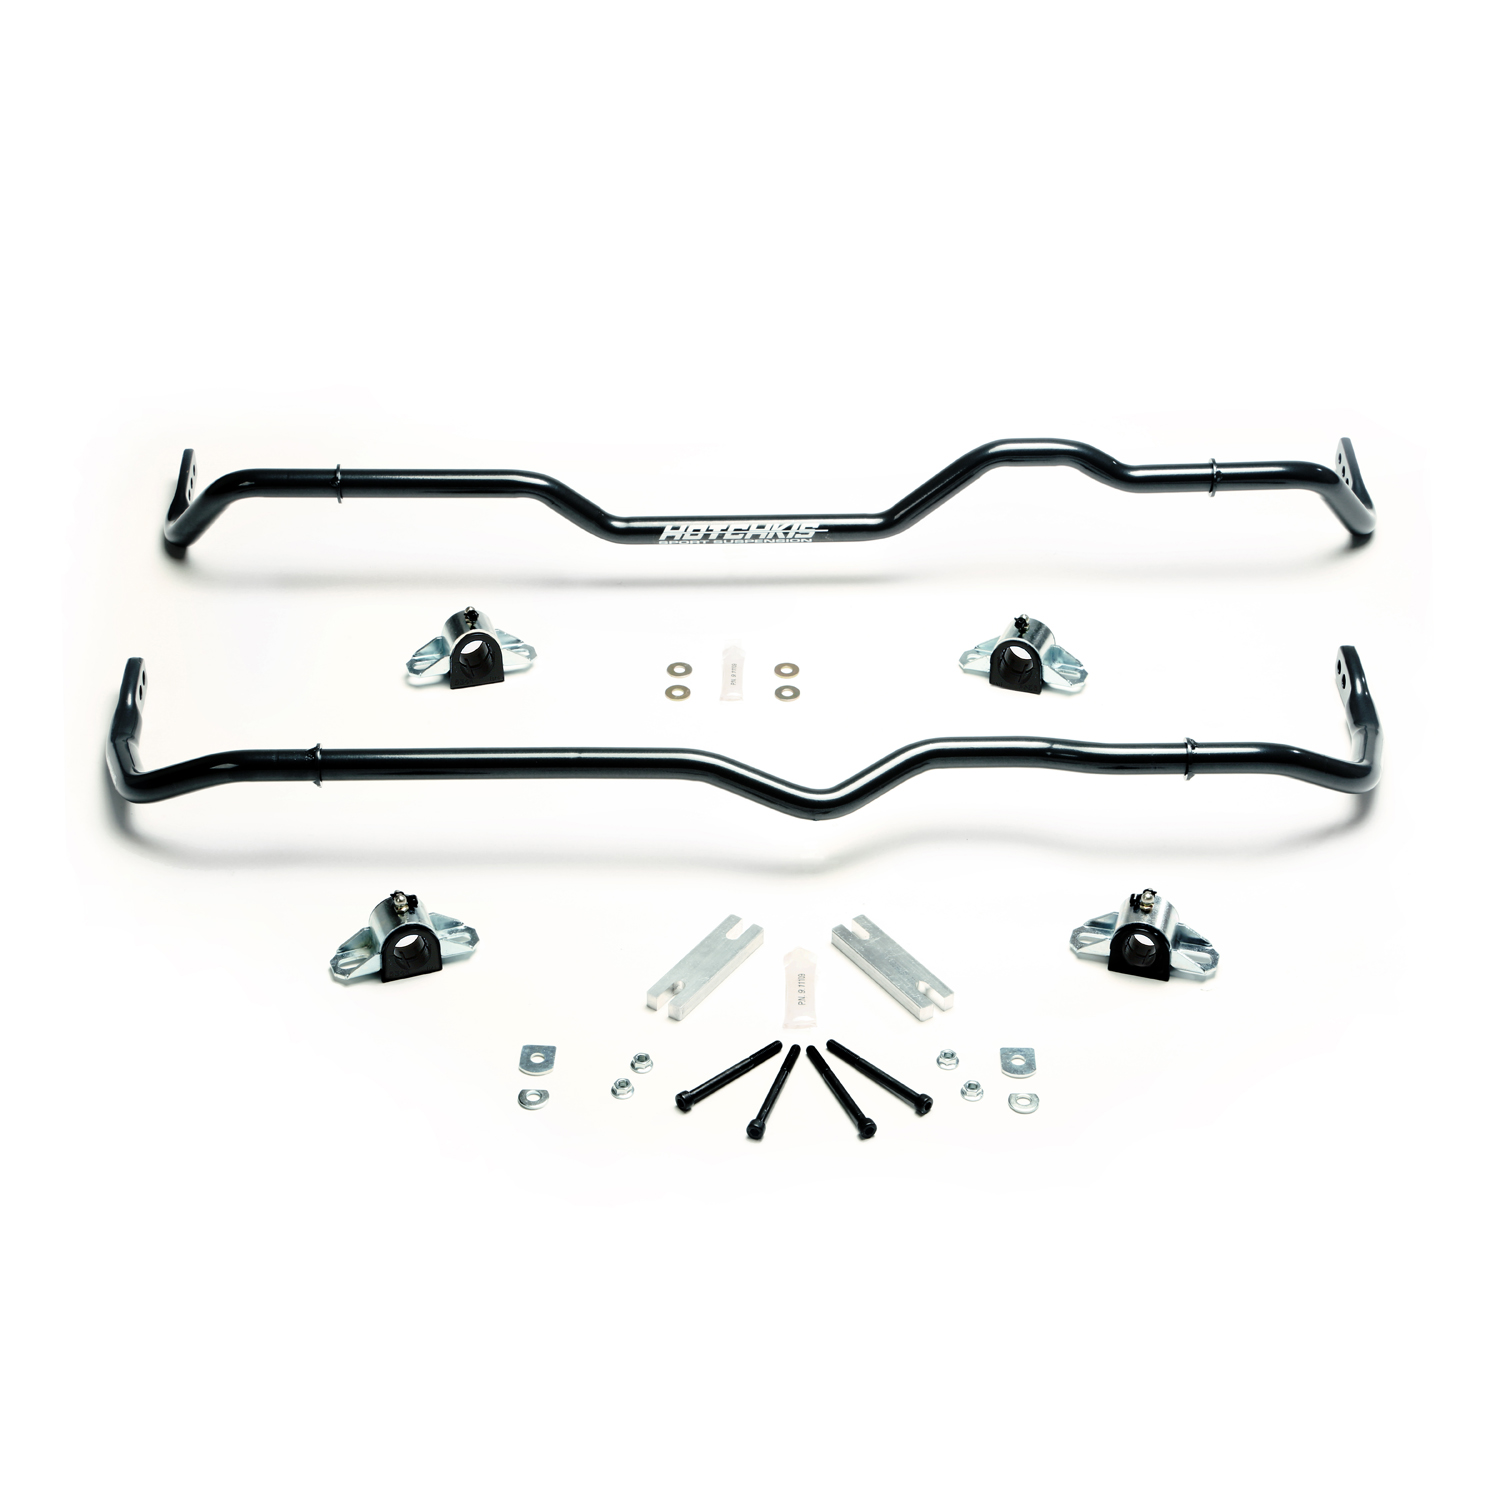 Hotchkis Sport Suspension Systems Parts And Complete Bolt In Packages Blog Archive Vw